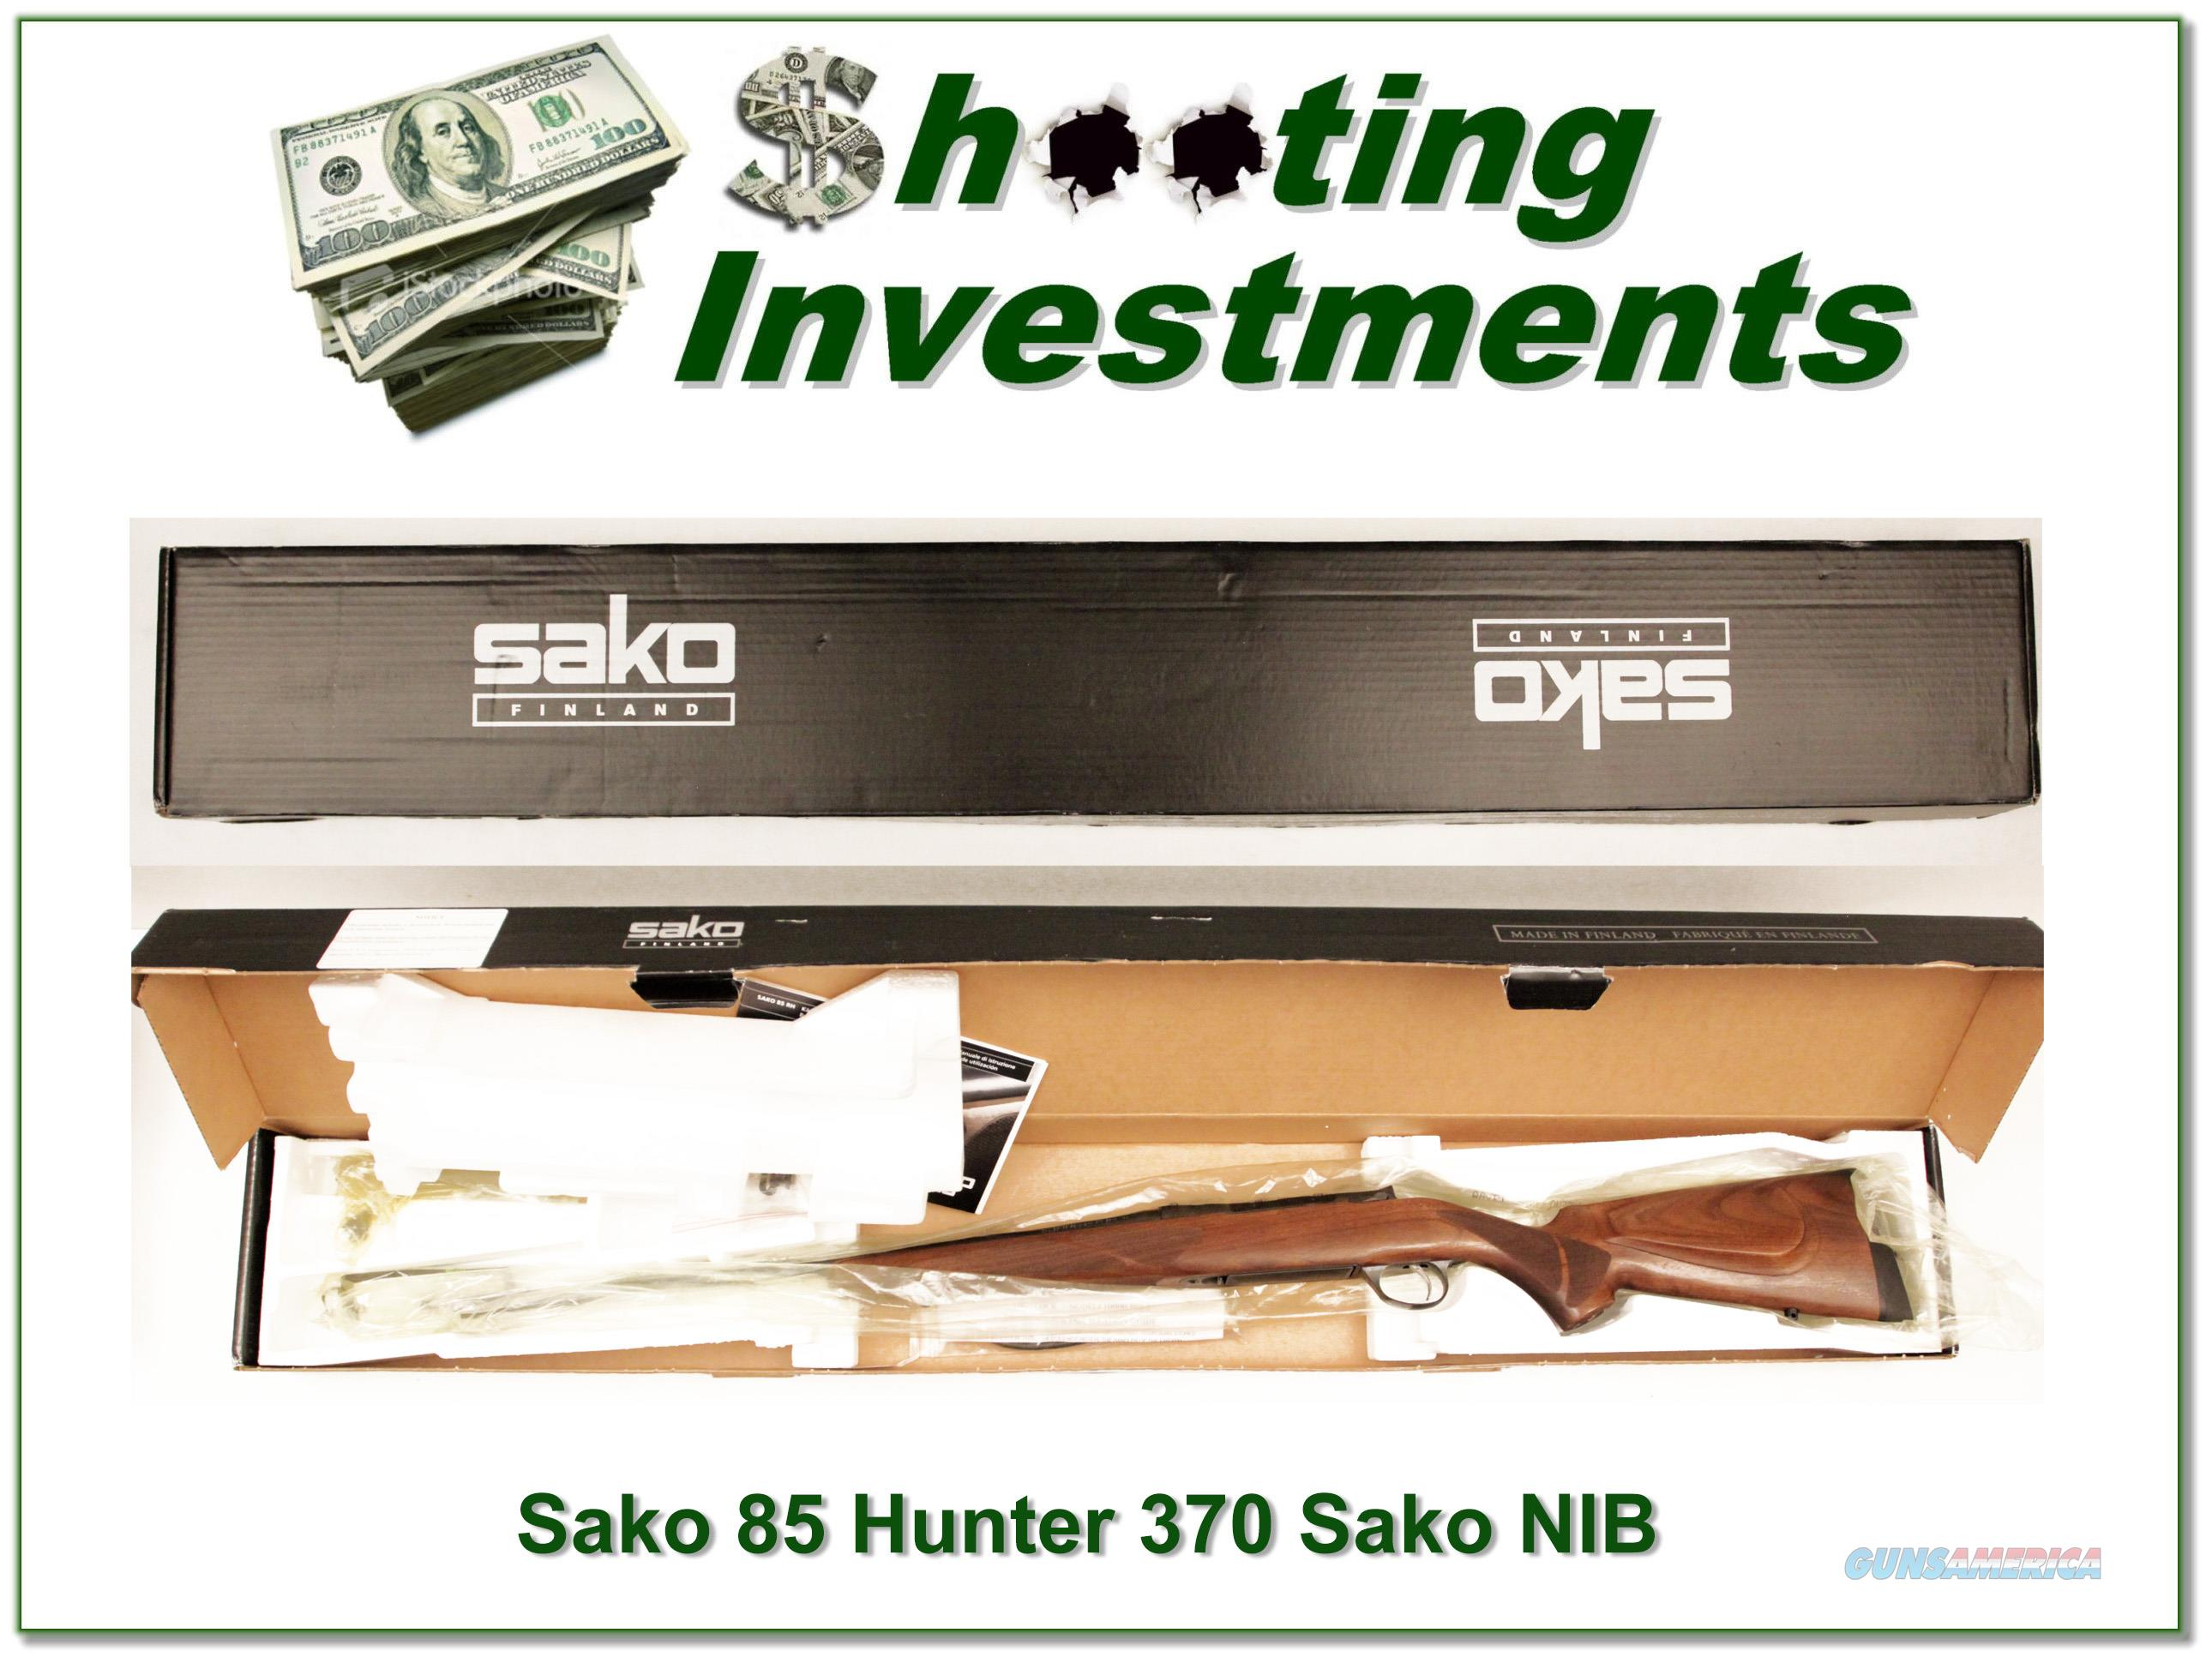 Sako 85 Hunter 370 Sako magnum 9.3X66 NIB!  Guns > Rifles > Sako Rifles > M85 Series